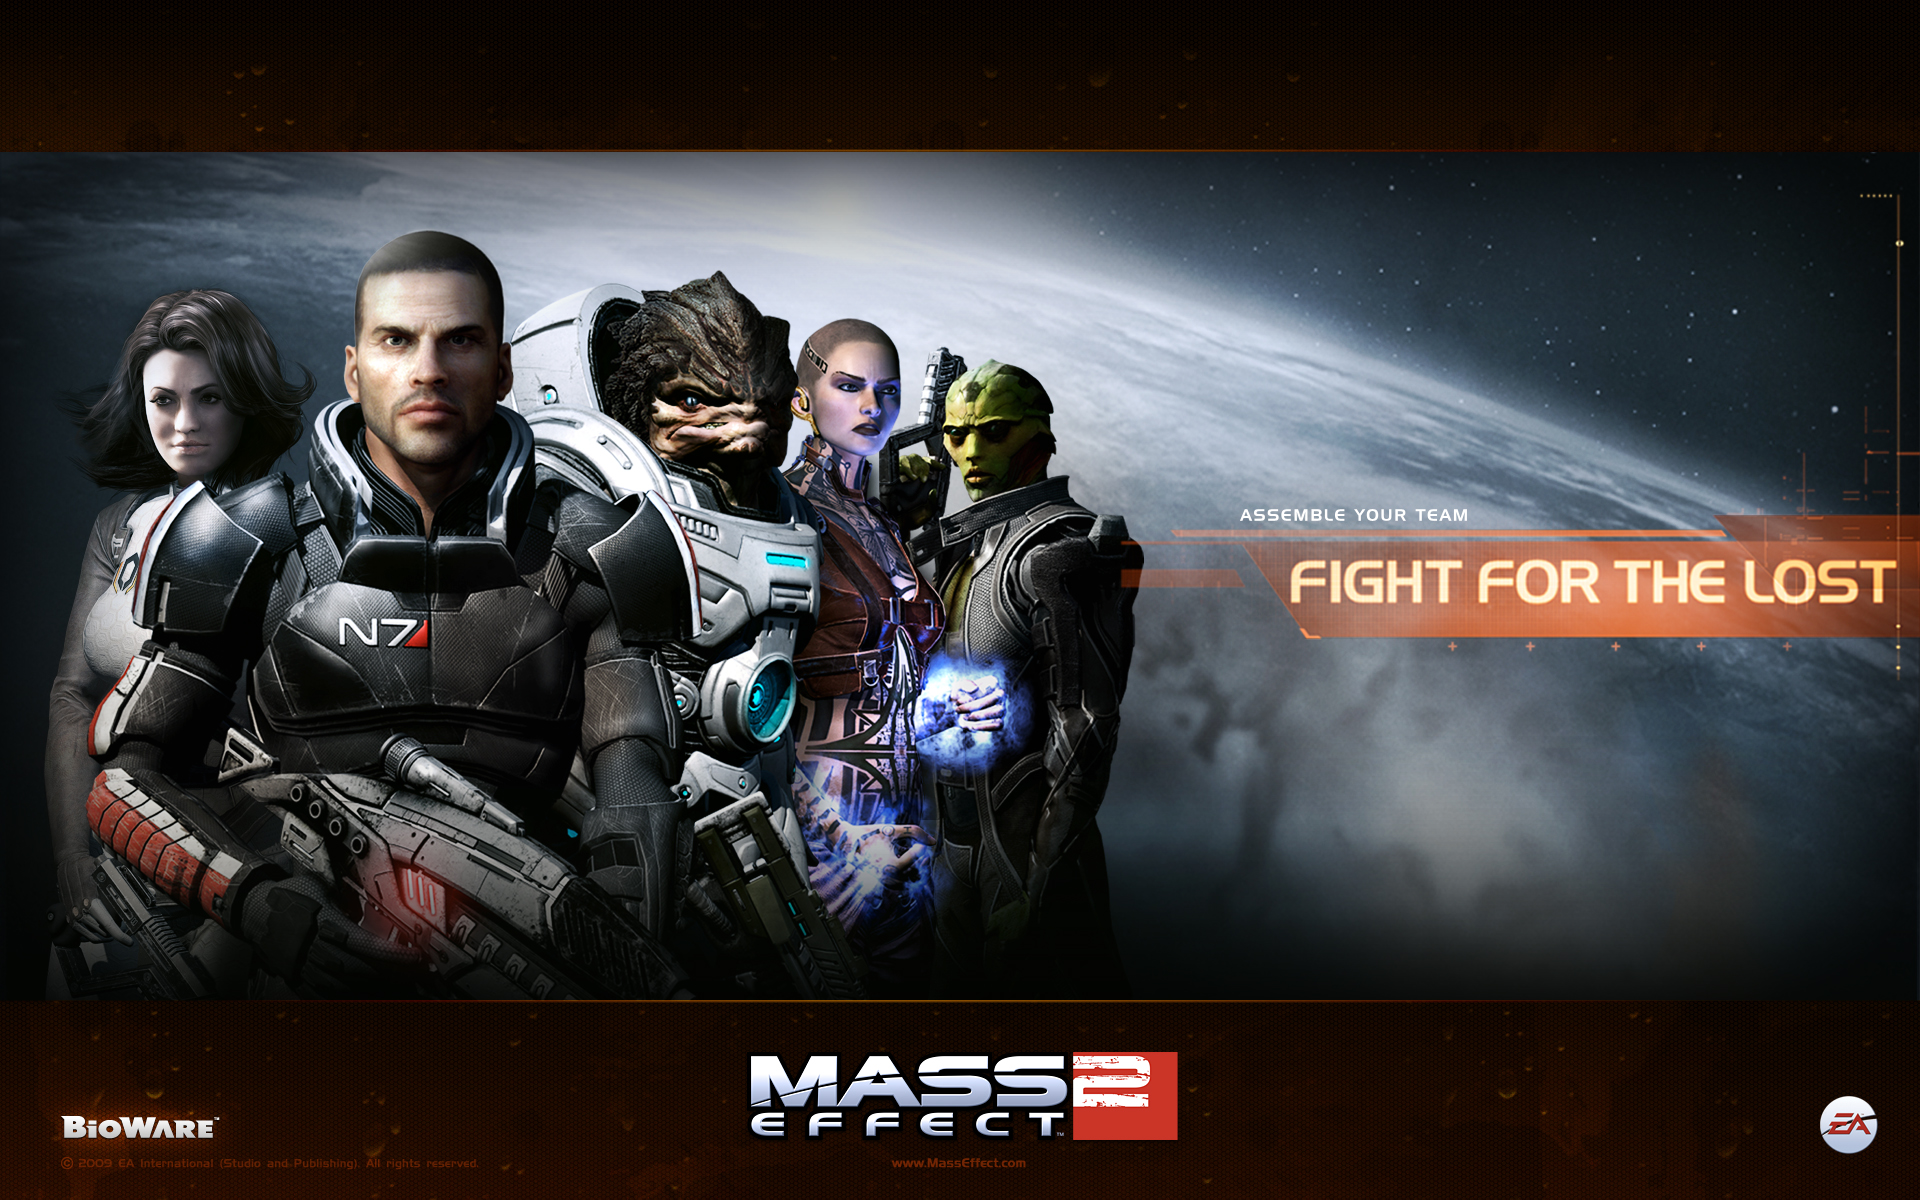 http://lvlt.bioware.cdn.ea.com/bioware/u/f/eagames/bioware/masseffect2/resources/assets/media/wallpapers/wallpaper-24-fftl-1920x1200.jpg